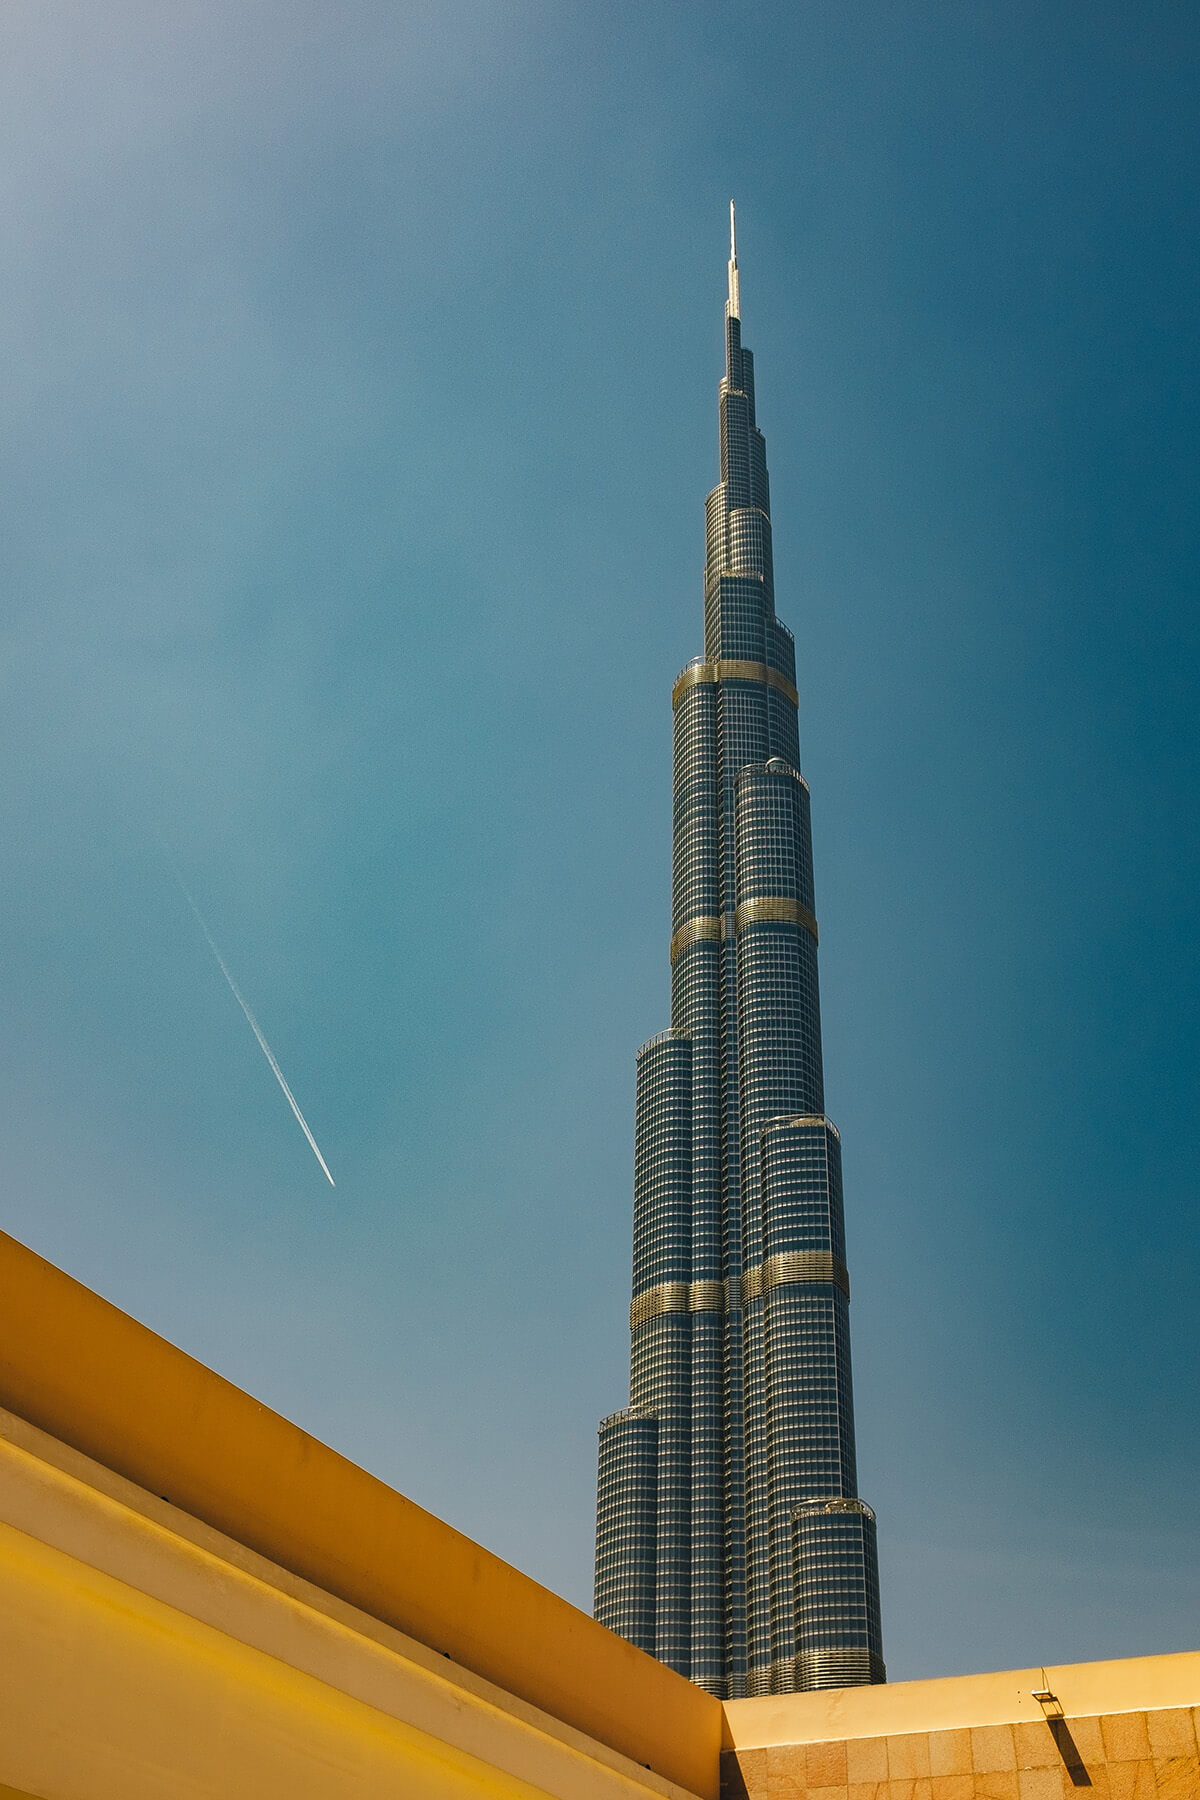 Going up the Burj Khalifa (the world's tallest building) costs over $100 but photographing it from the street is one of the best free things to do in Dubai